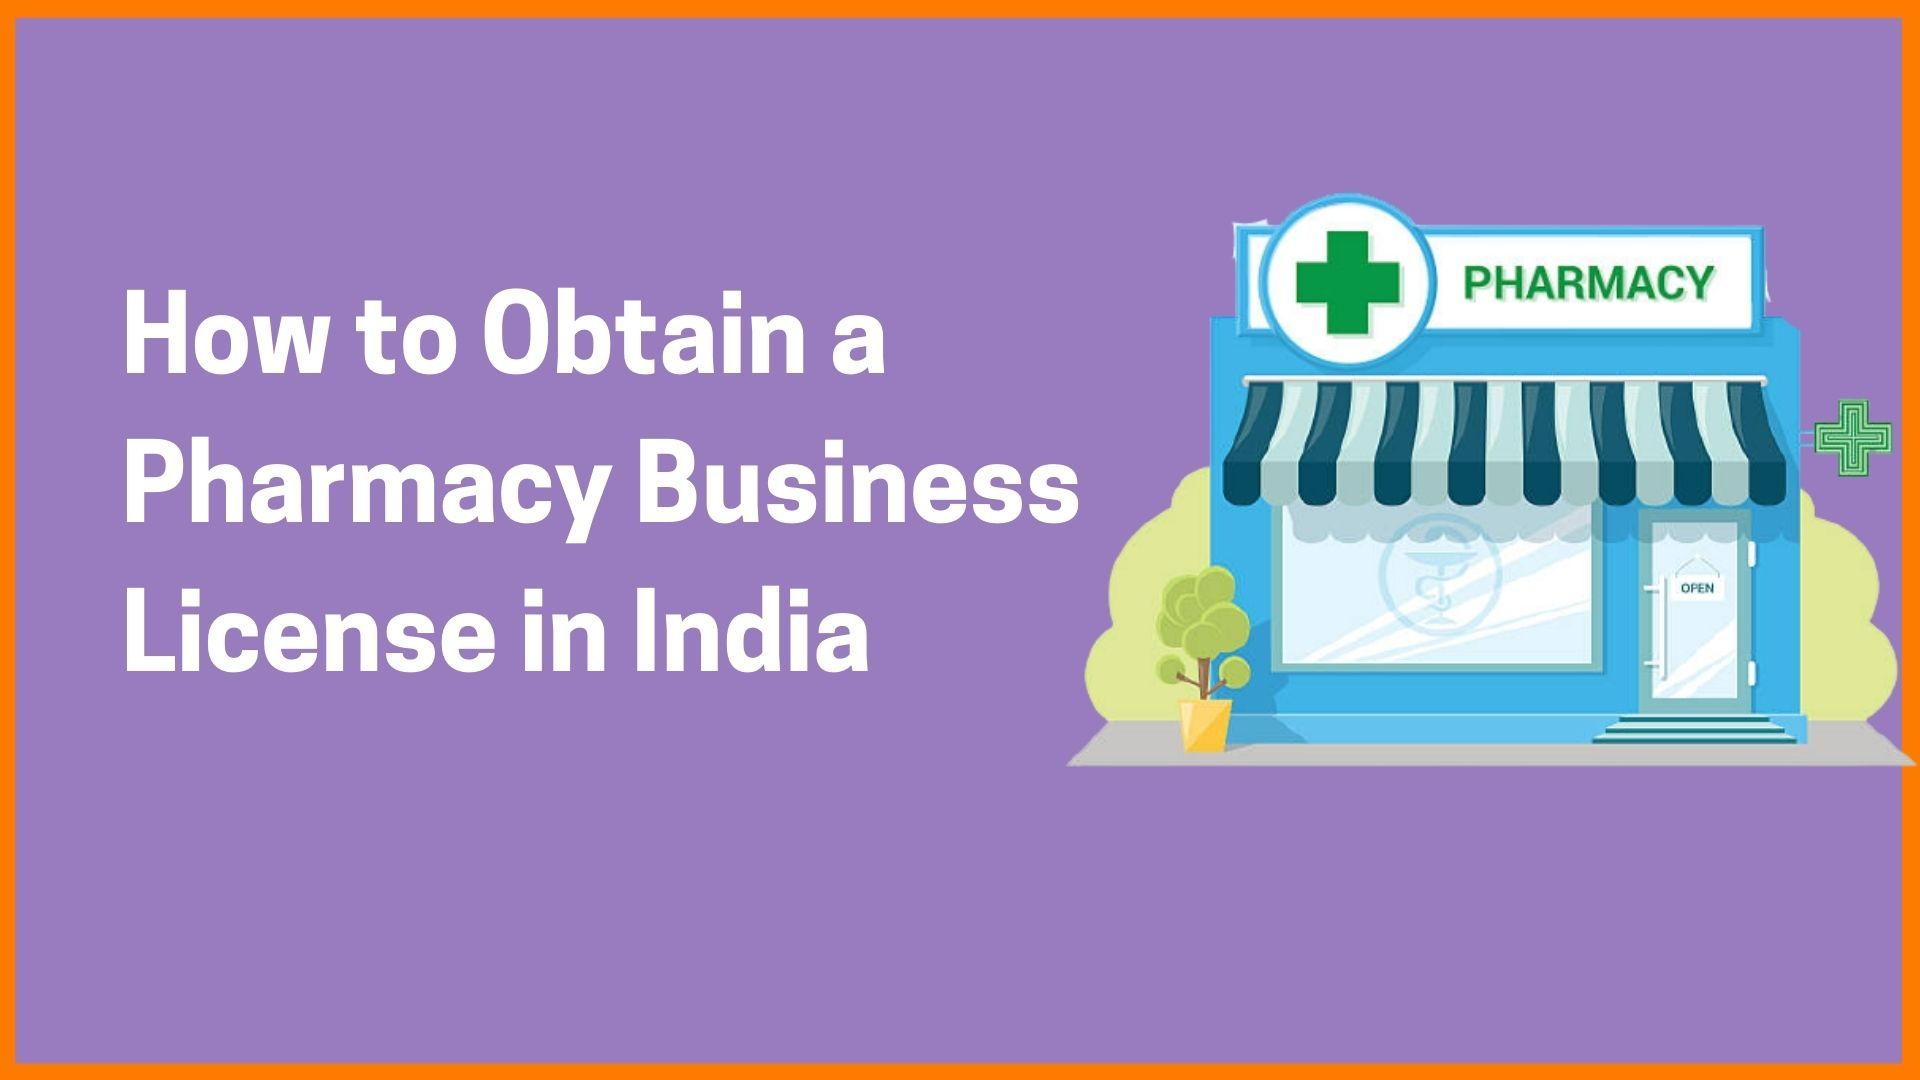 How to Obtain a Pharmacy Business License in India